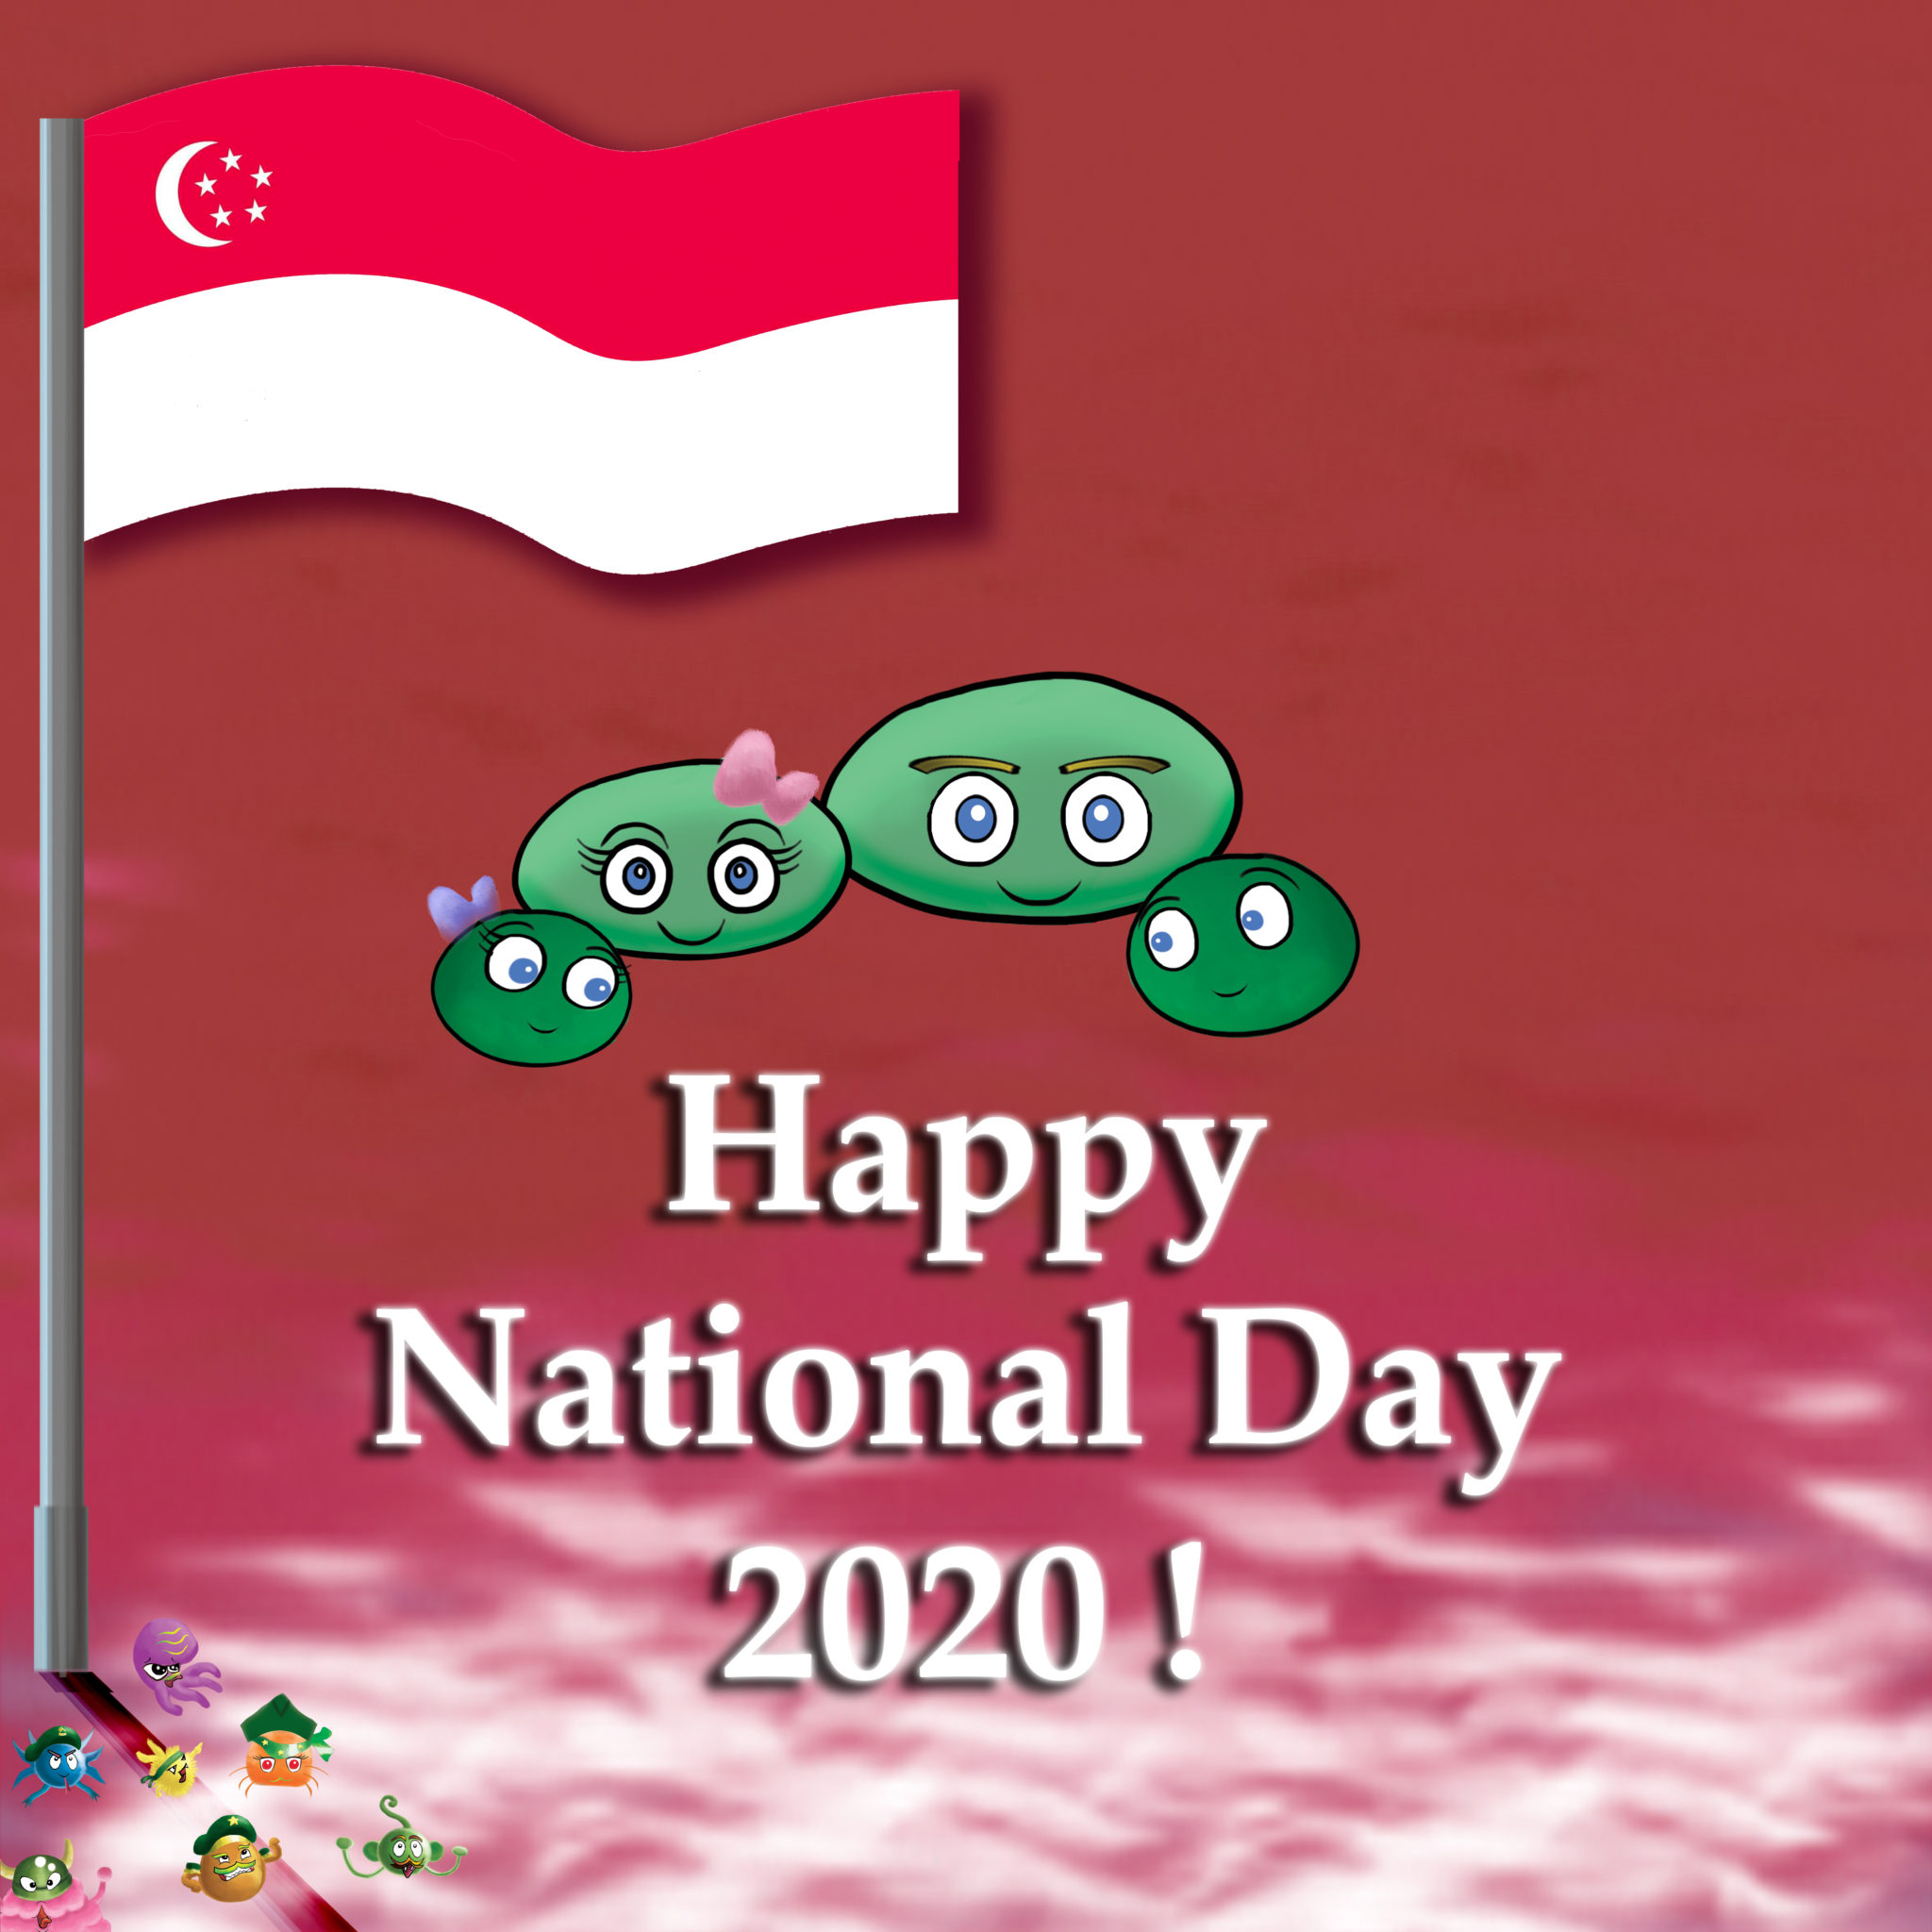 Singapore National Day 2020